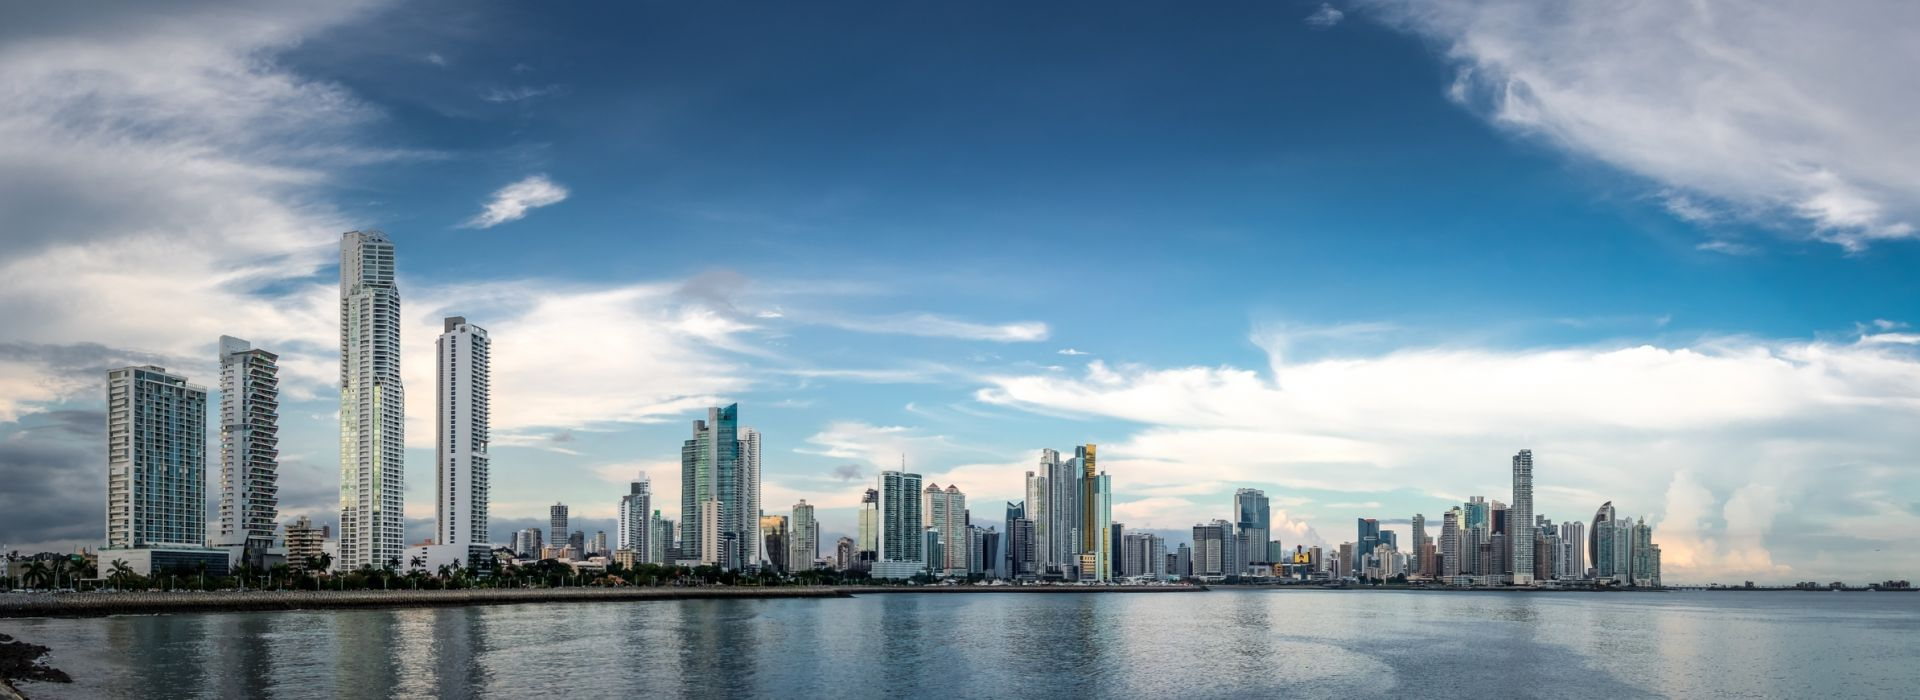 Explorer Tours in Panama City